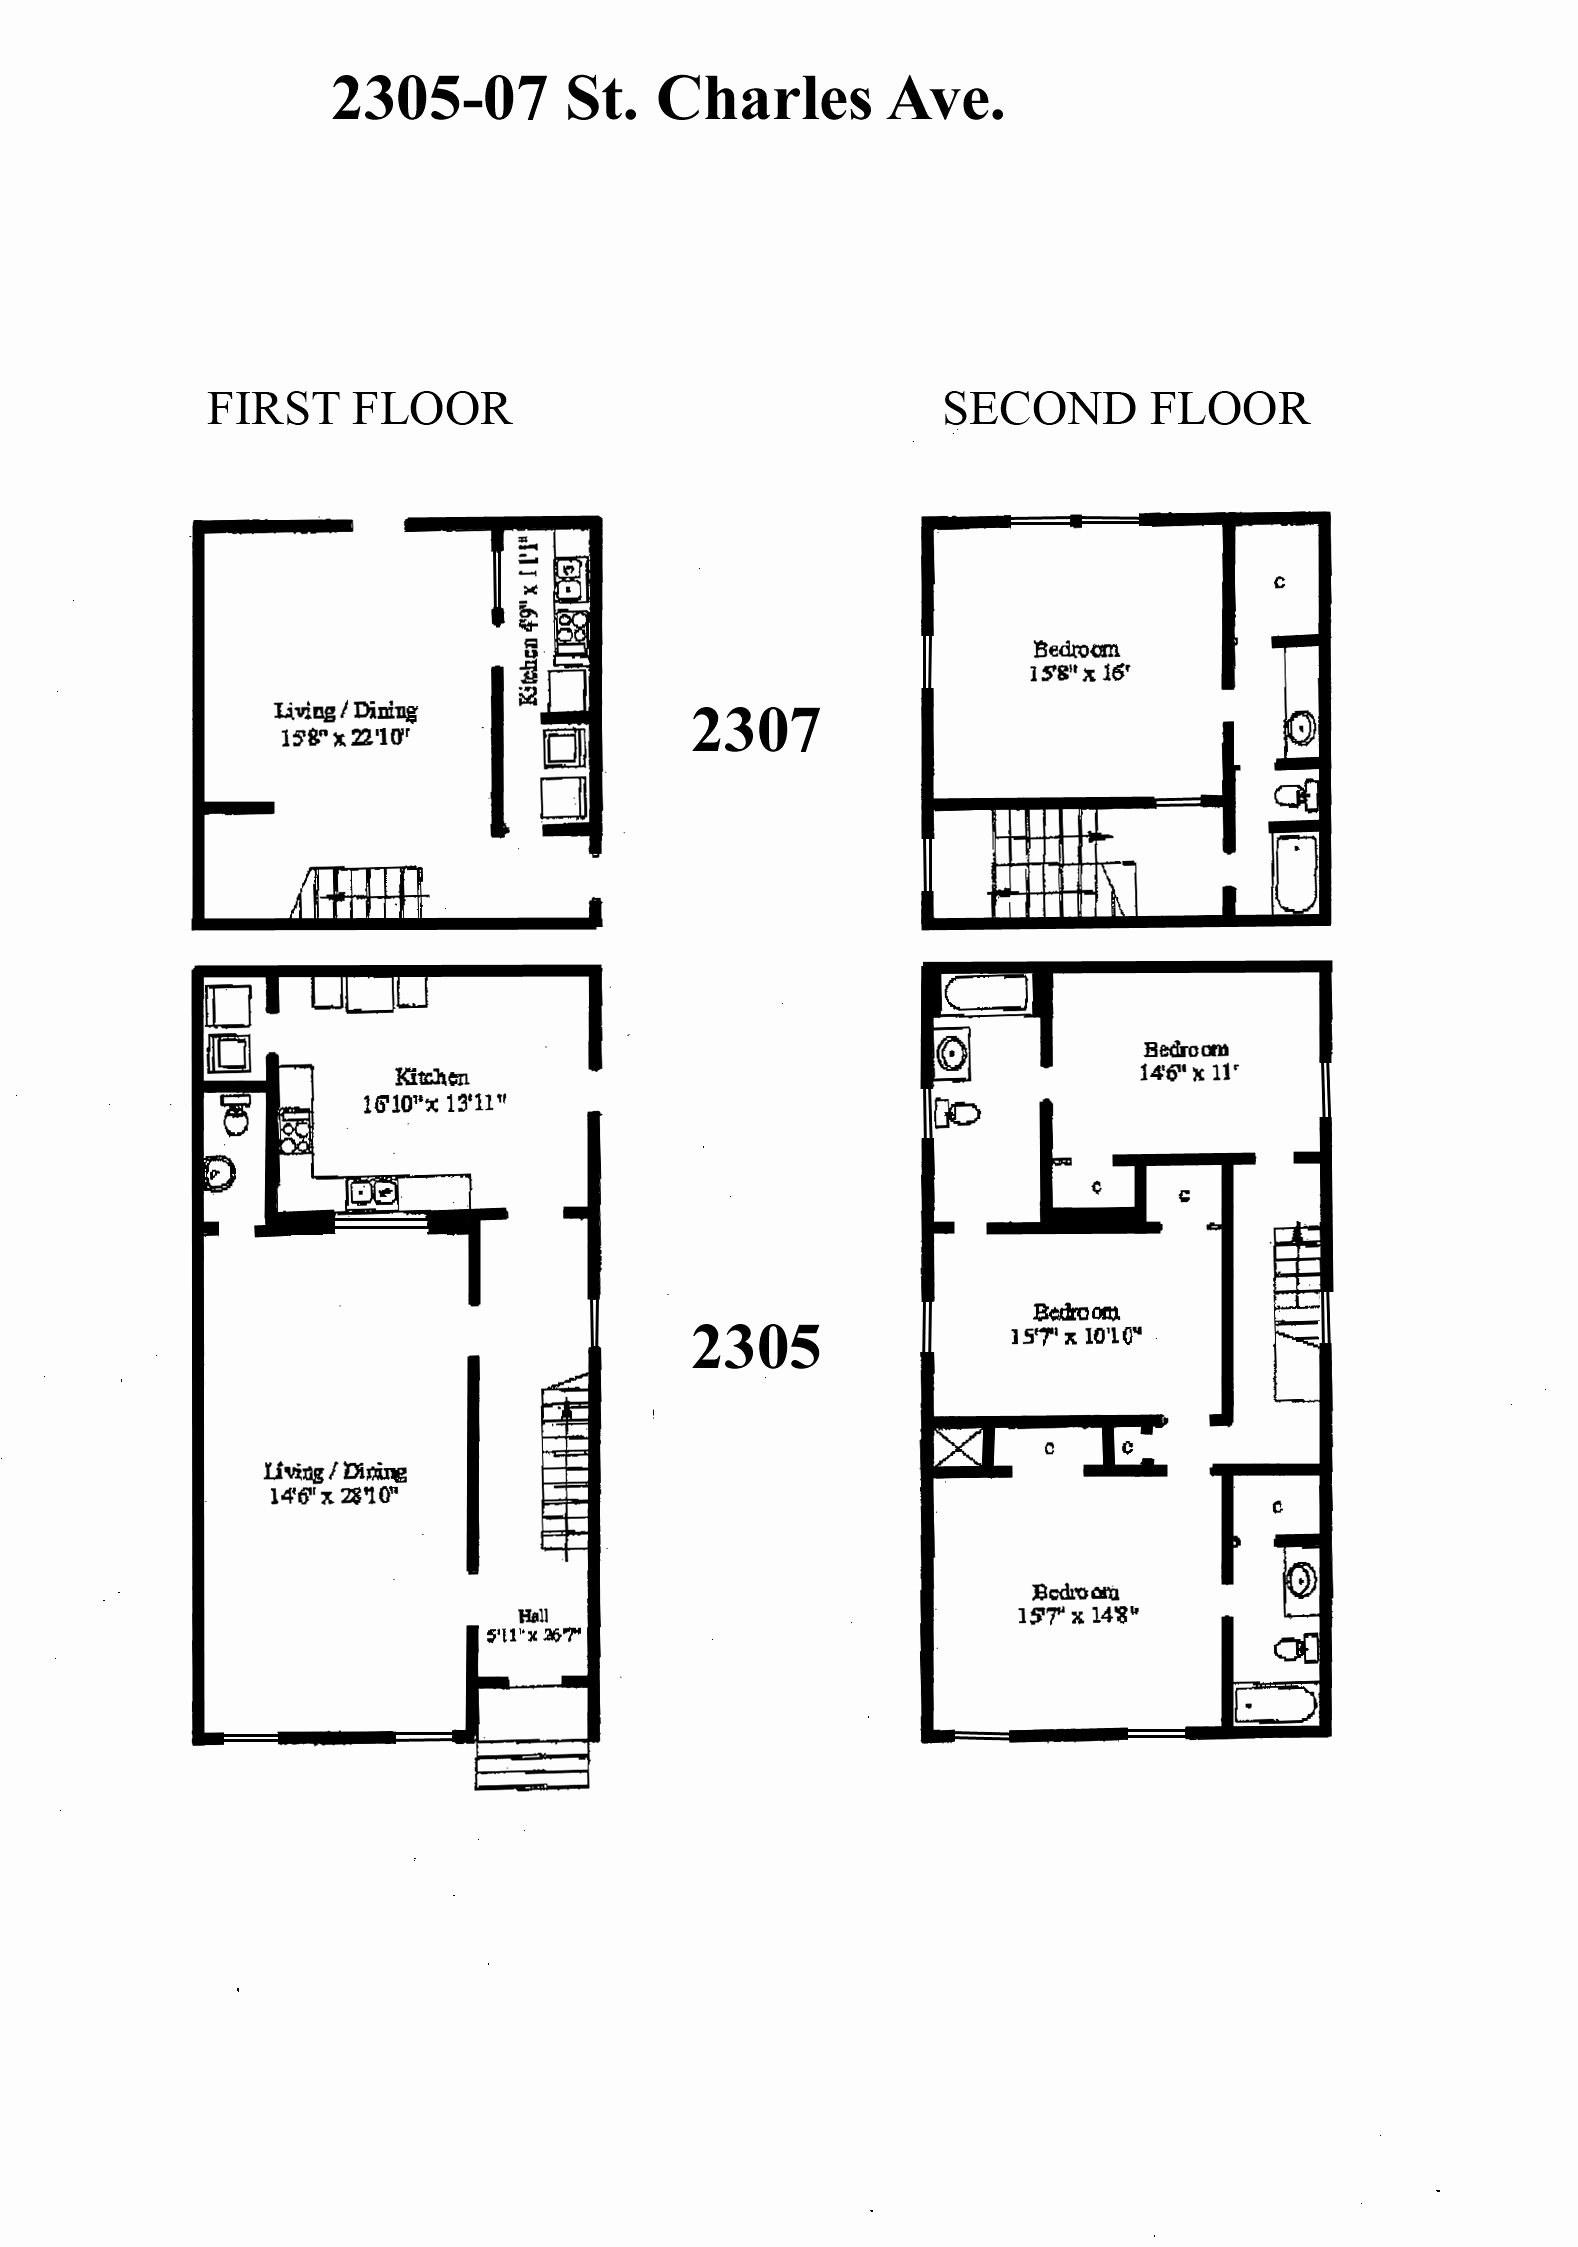 Excel Floor Plan Template New Excel Floor Plan Template New Free Excel Wedding Planner